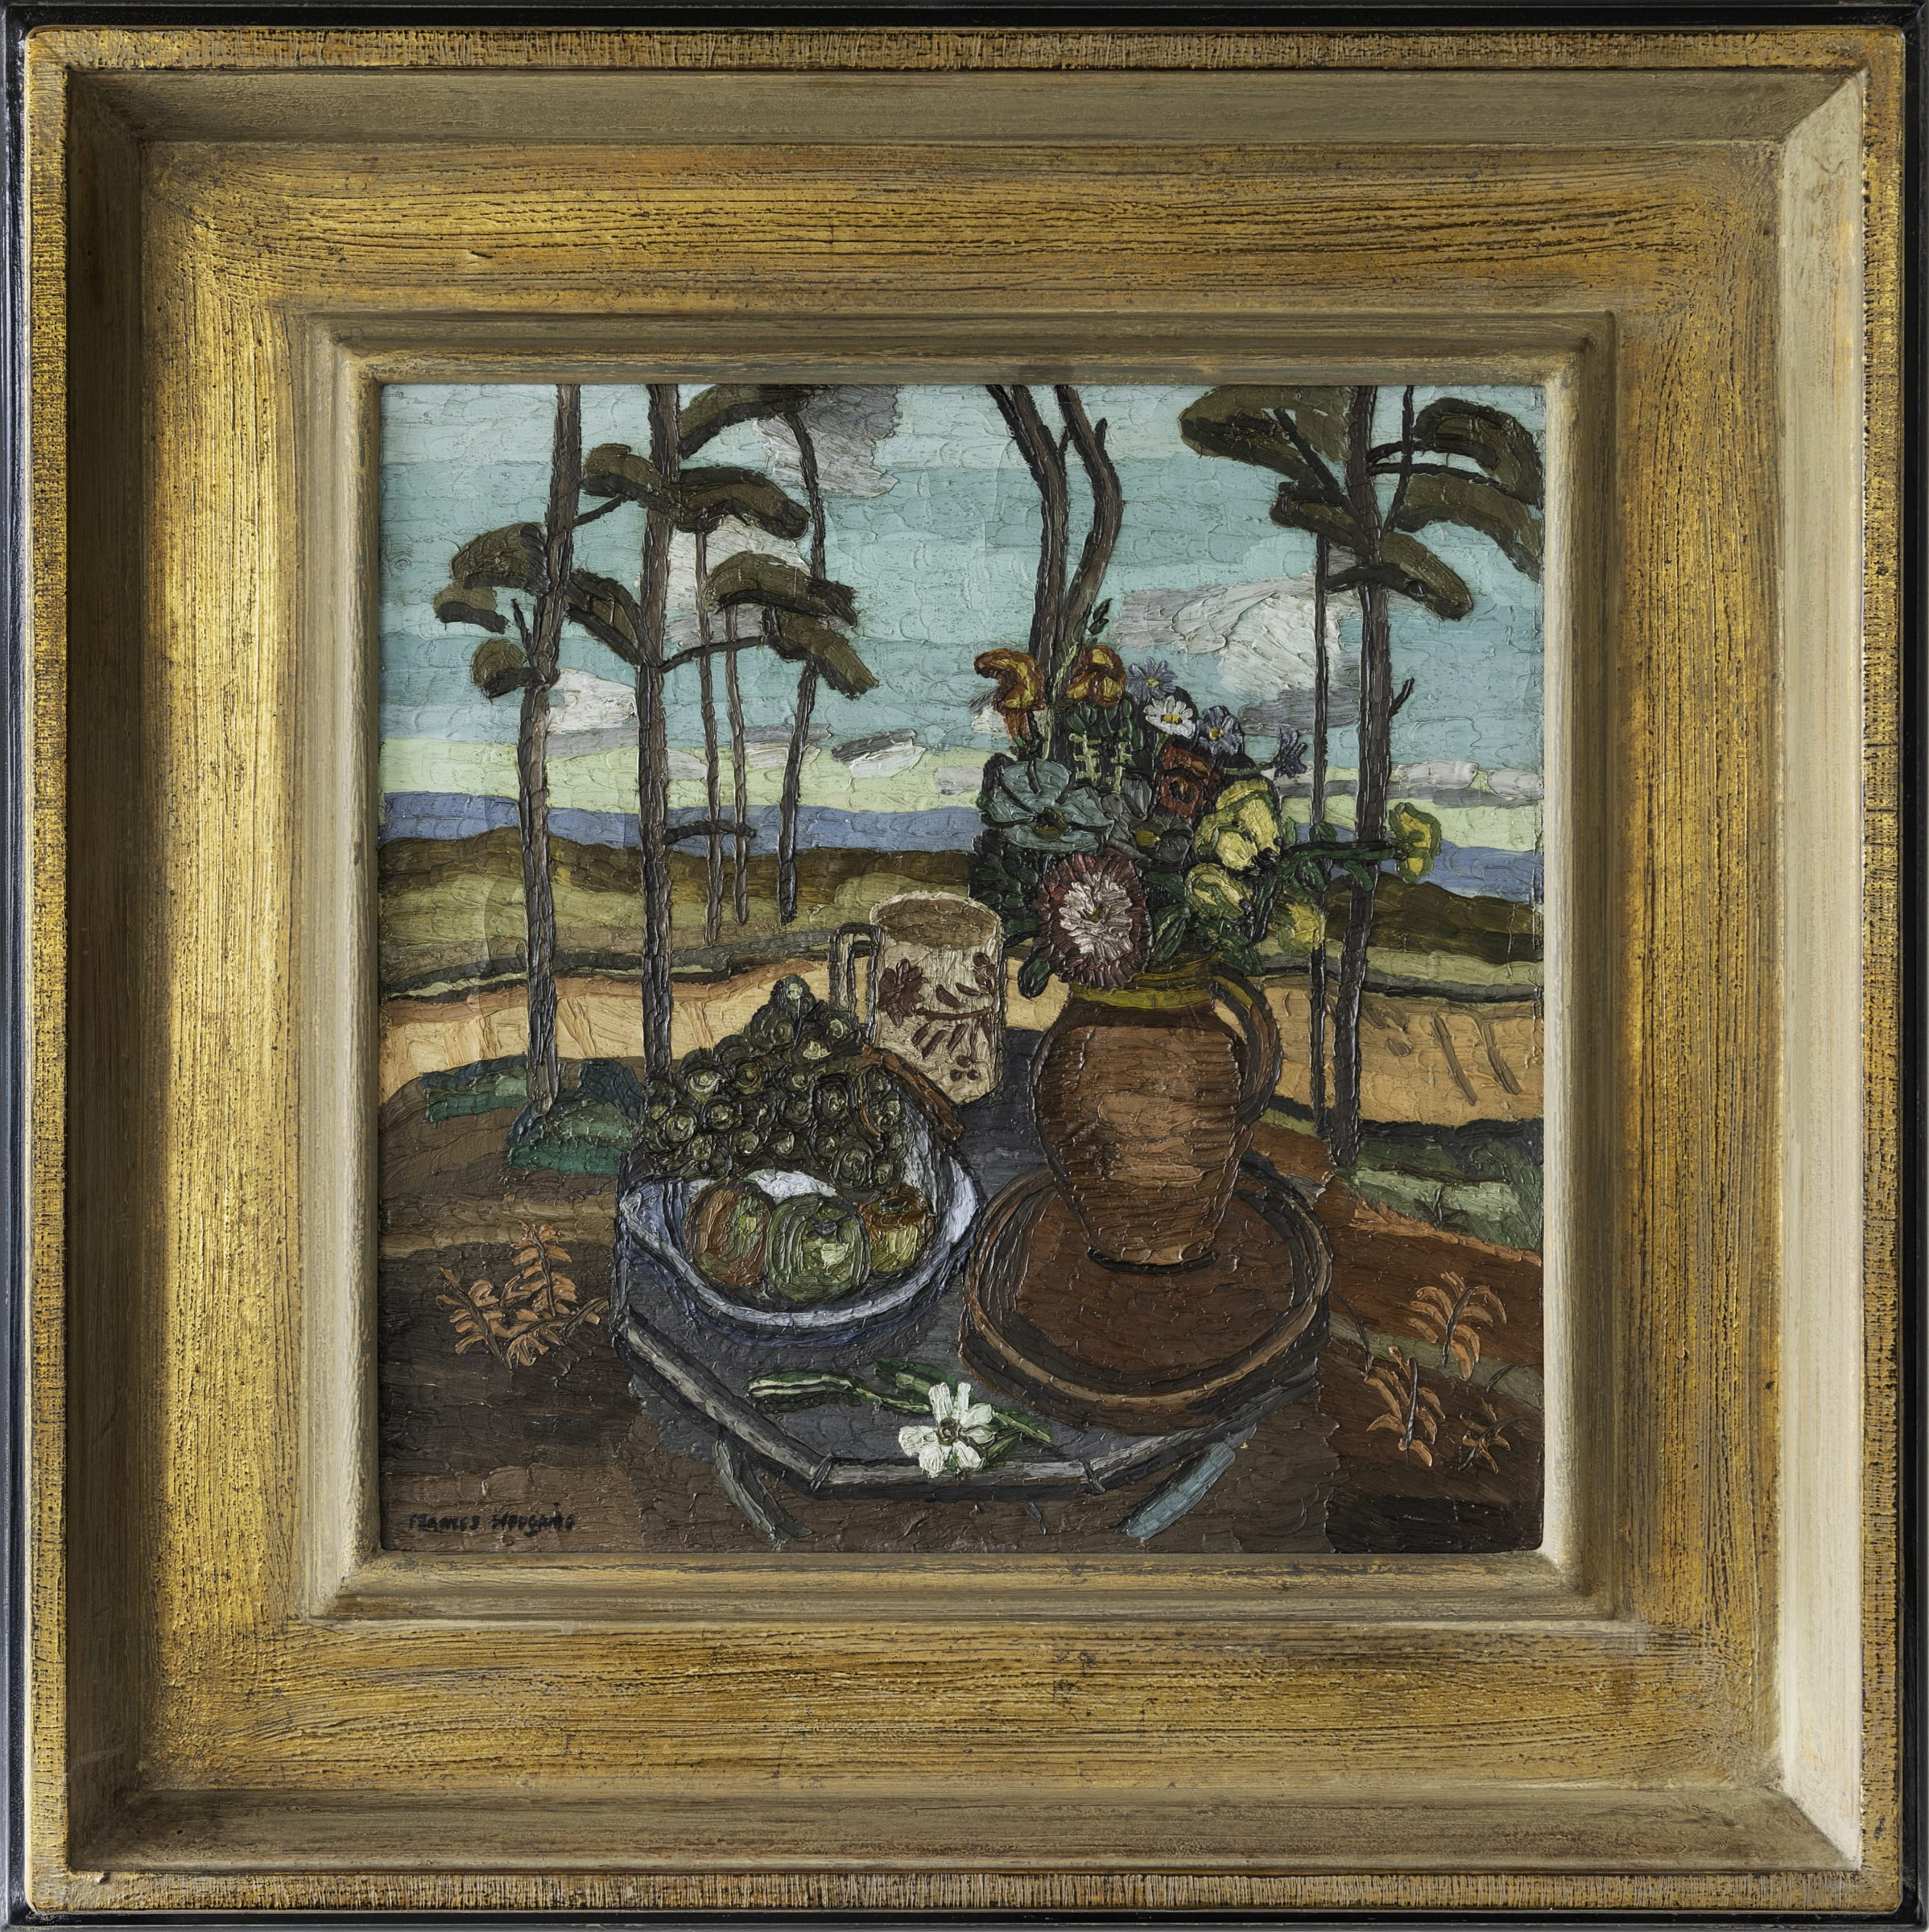 """<span class=""""link fancybox-details-link""""><a href=""""/artists/115-frances-mary-hodgkins/works/8397-frances-mary-hodgkins-untitled-still-life-with-flowers-in-a-landscape-c1929/"""">View Detail Page</a></span><div class=""""artist""""><strong>Frances Mary Hodgkins</strong></div> <div class=""""title""""><em>Untitled [Still Life with Flowers in a Landscape] </em>, c1929</div> <div class=""""signed_and_dated"""">Signed lower left Frances Hodgkins</div> <div class=""""medium"""">Oil on canvas</div> <div class=""""dimensions"""">545mm x 545mm</div>"""